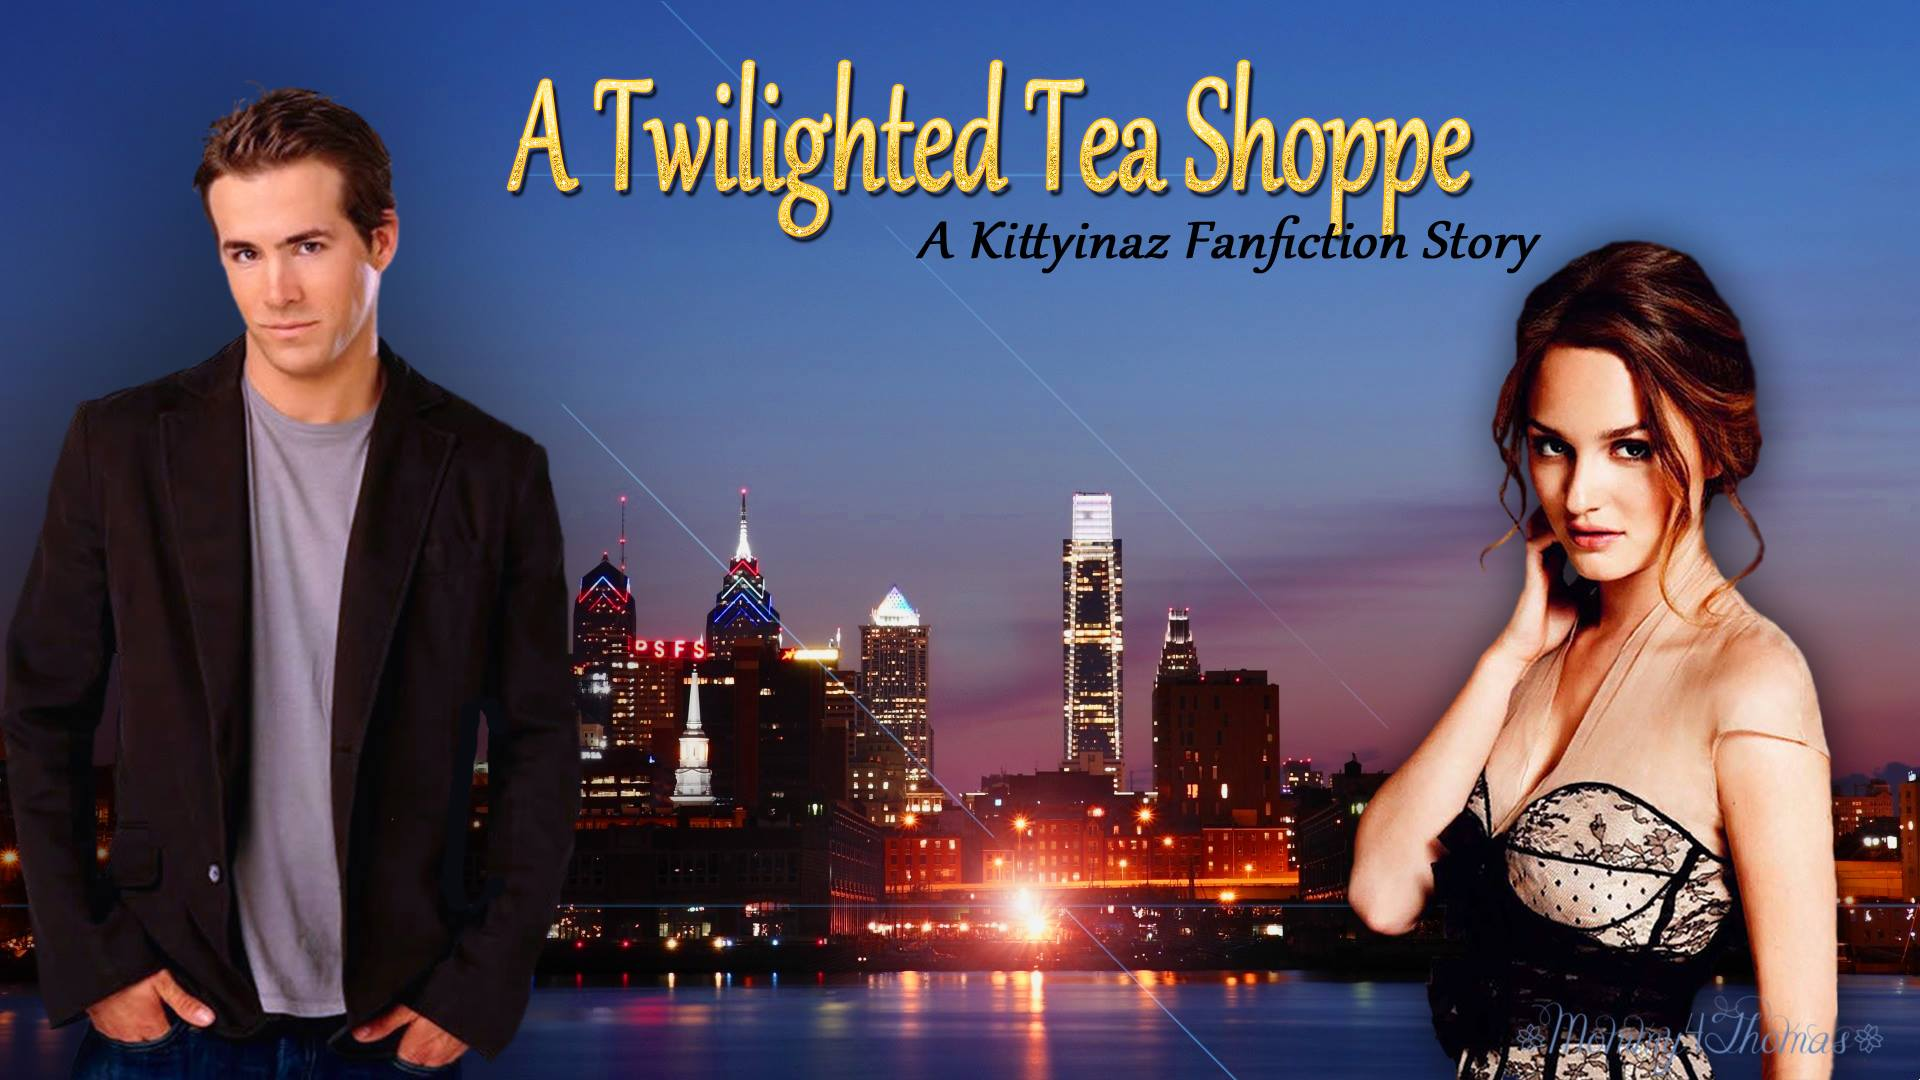 Twilighted Tea Shoppe